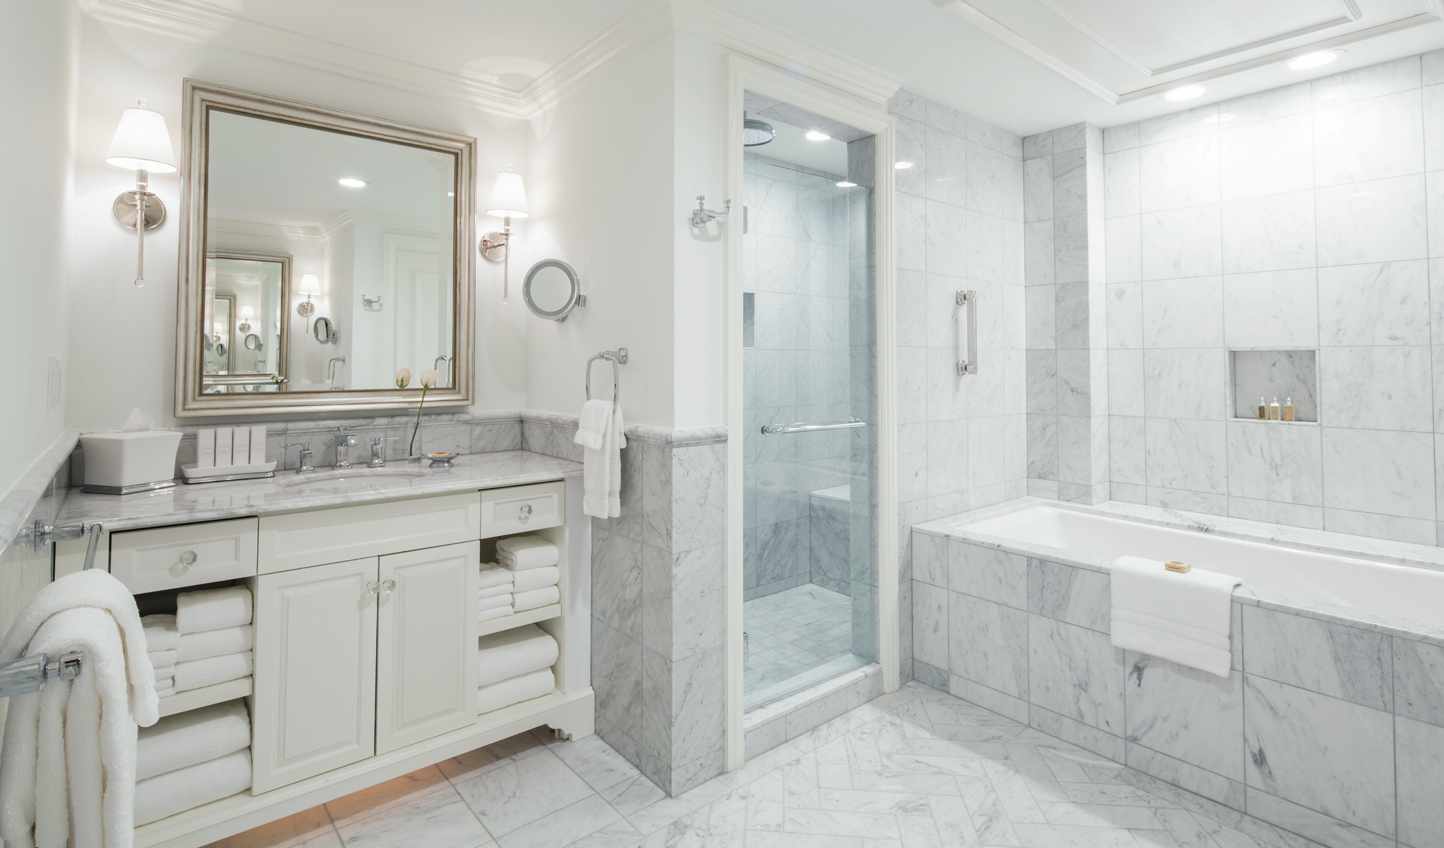 Slick marble bathrooms for added decadence